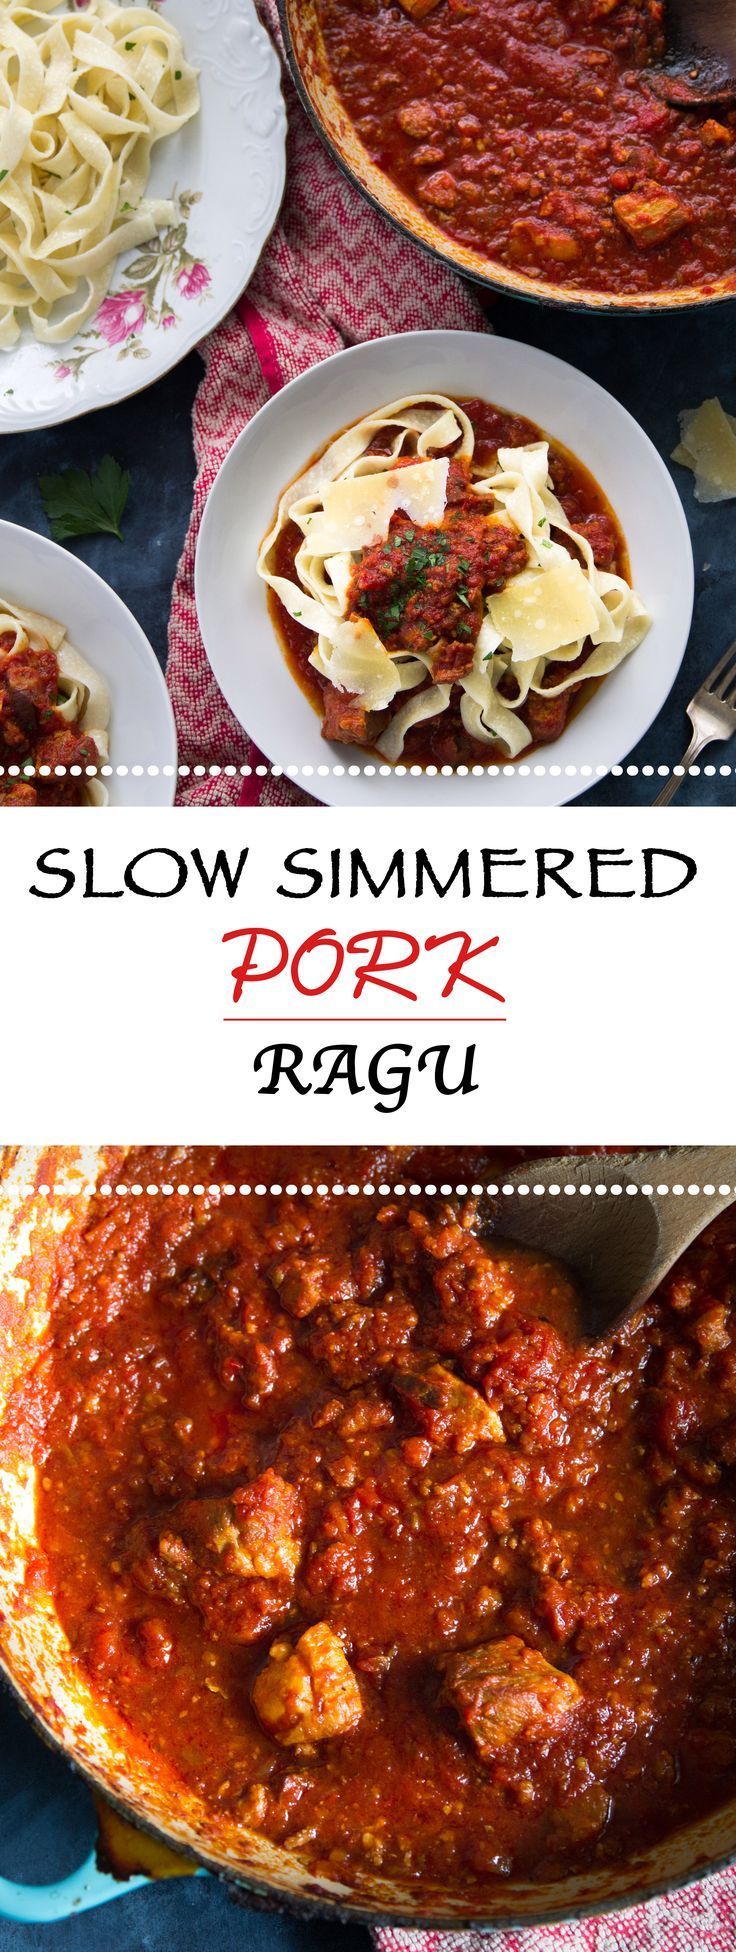 Succulent Pork Ragu made with pork belly, pork shoulder, prosciutto and Italian sausage! Slow simmered until tender in a white wine tomato sauce!